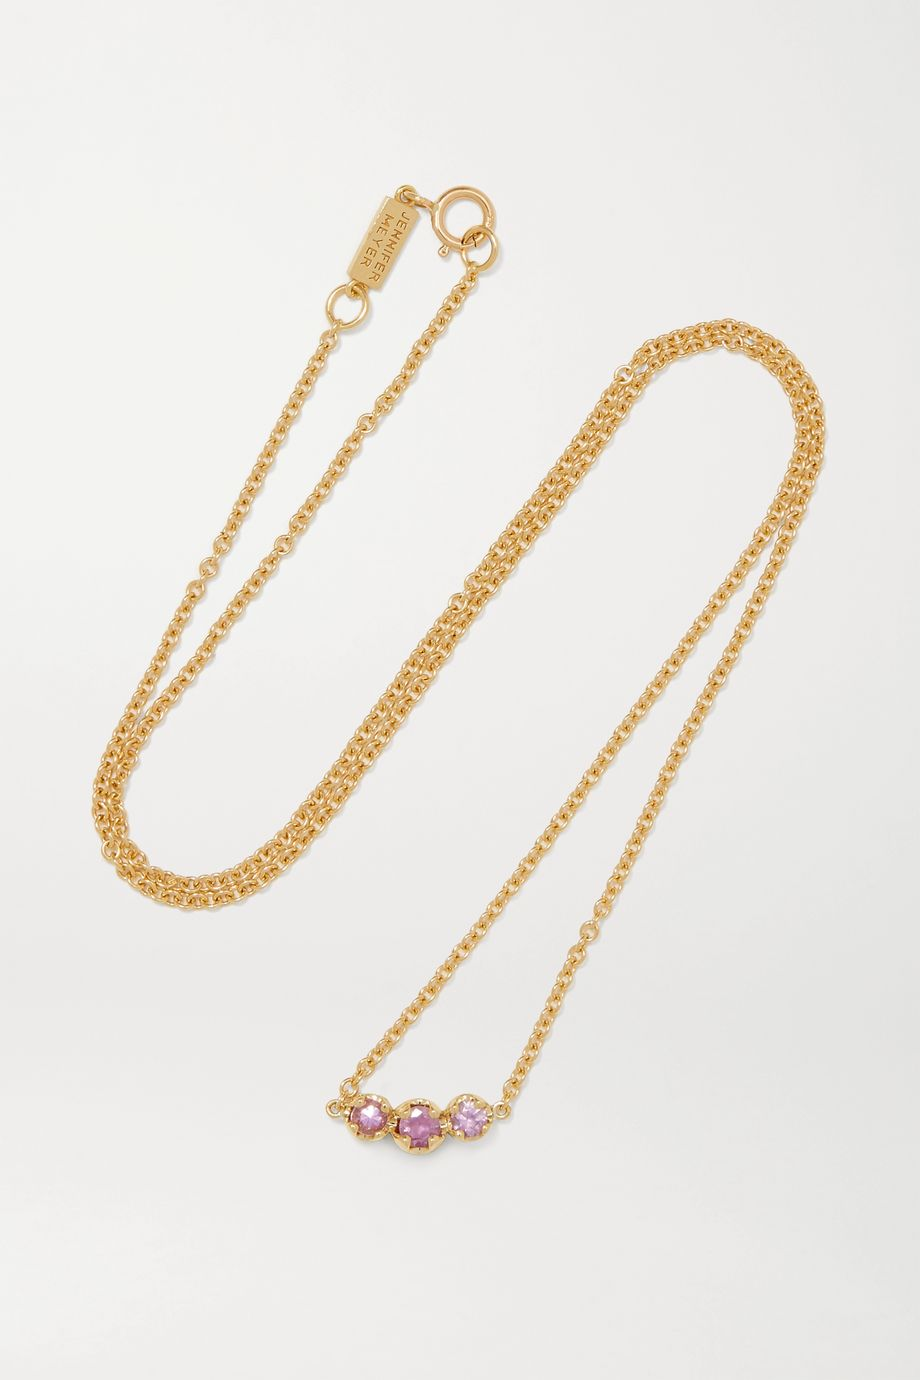 Jennifer Meyer Collier en or 18 carats et saphirs